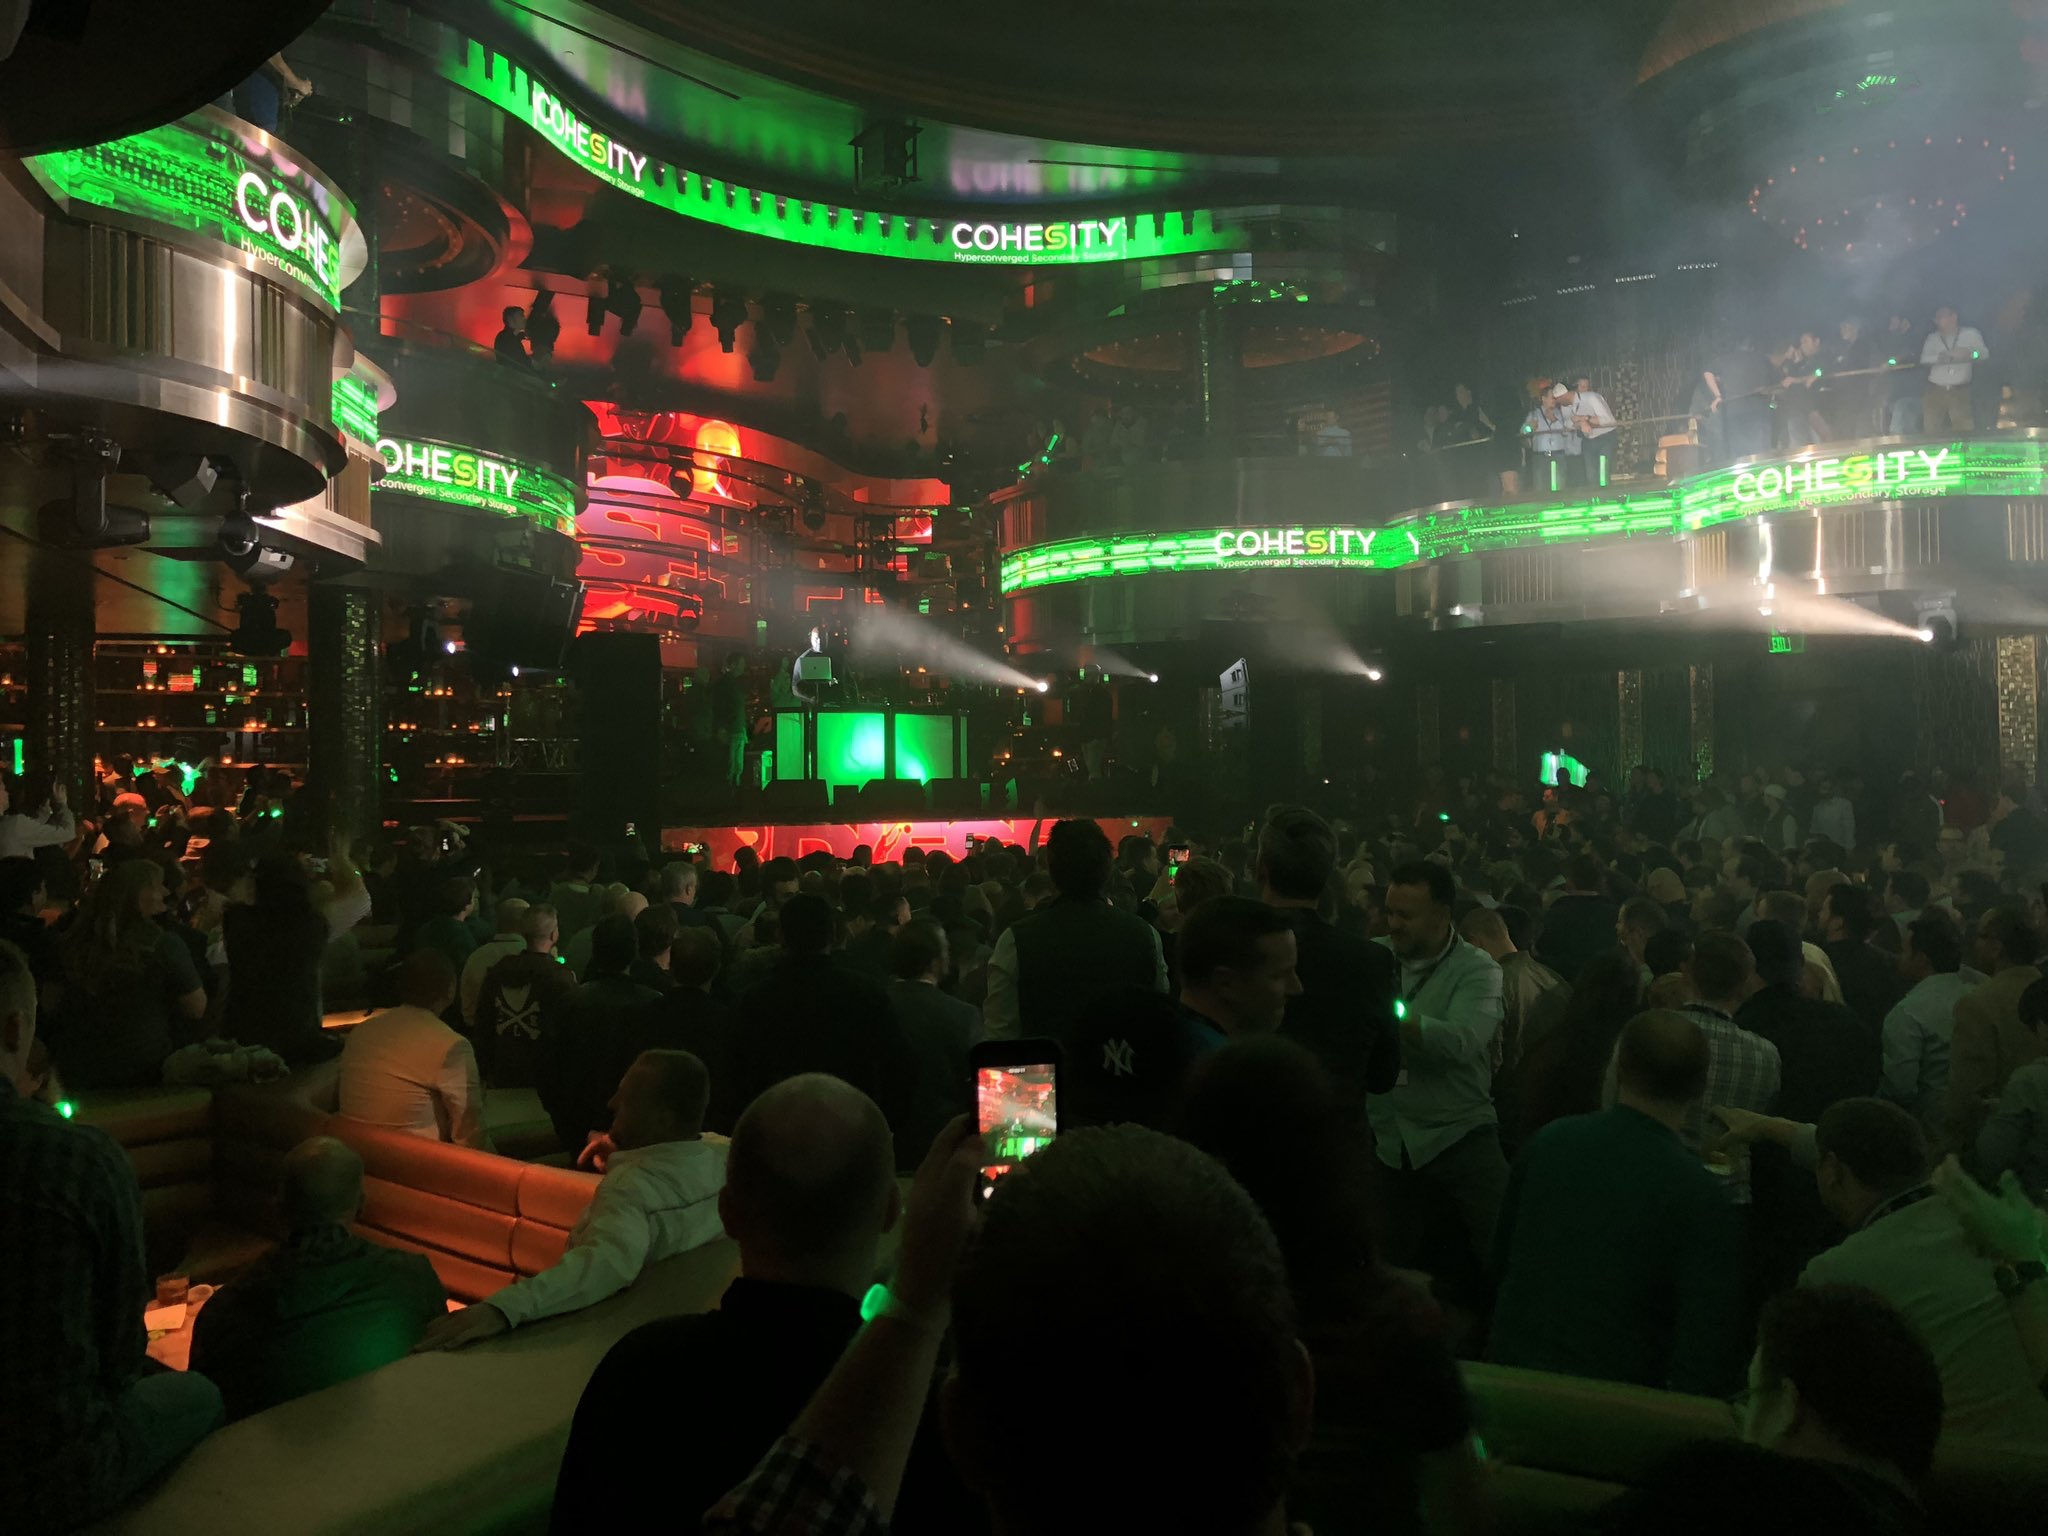 Cohesity at AWS re:Invent 2018: It Was One Big Cloud Fest